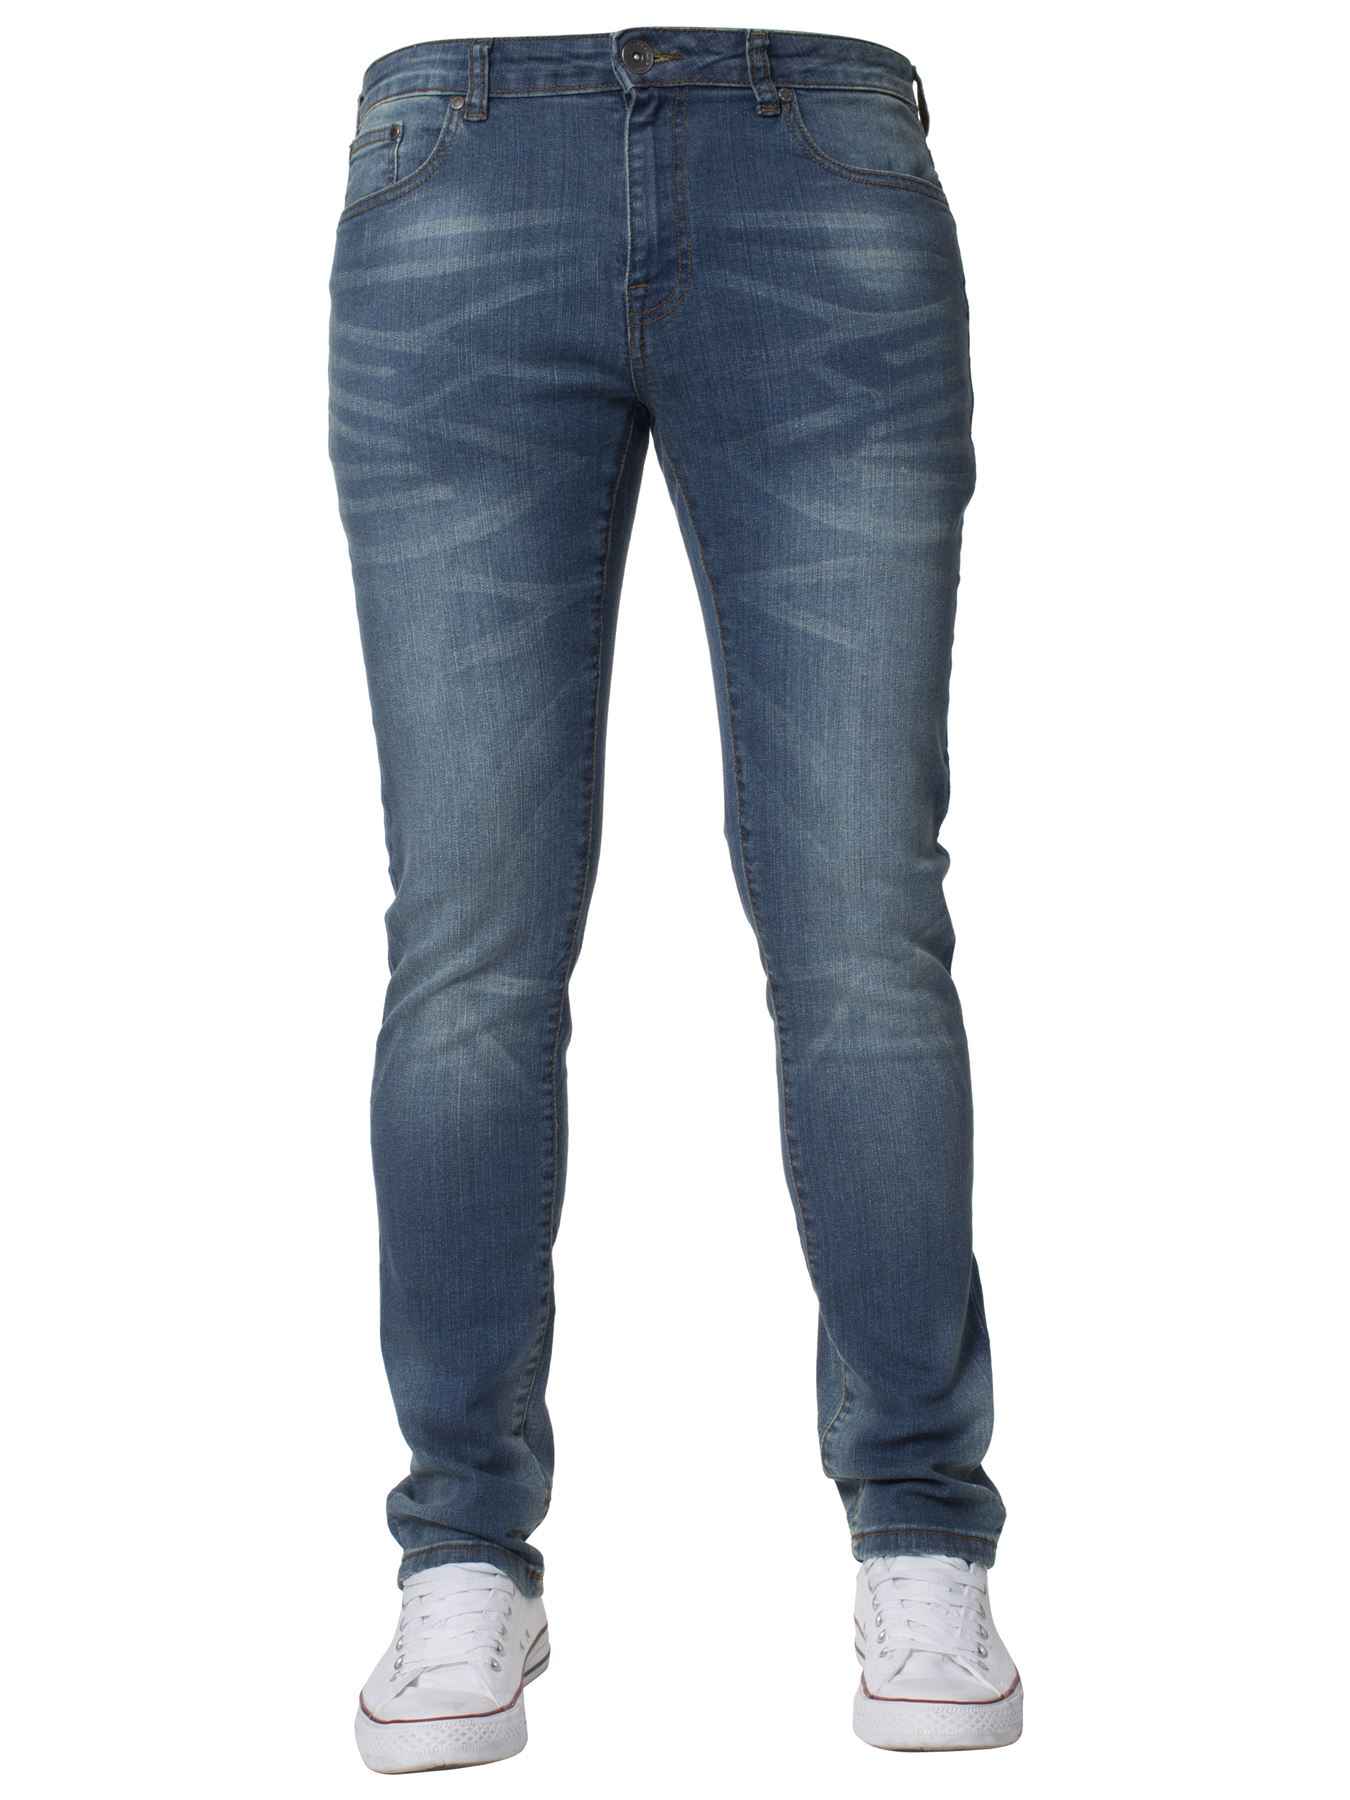 Kruze-Mens-Skinny-Stretch-Flex-Denim-Jeans-Slim-Fit-Trouser-Pants-Big-King-Sizes thumbnail 22